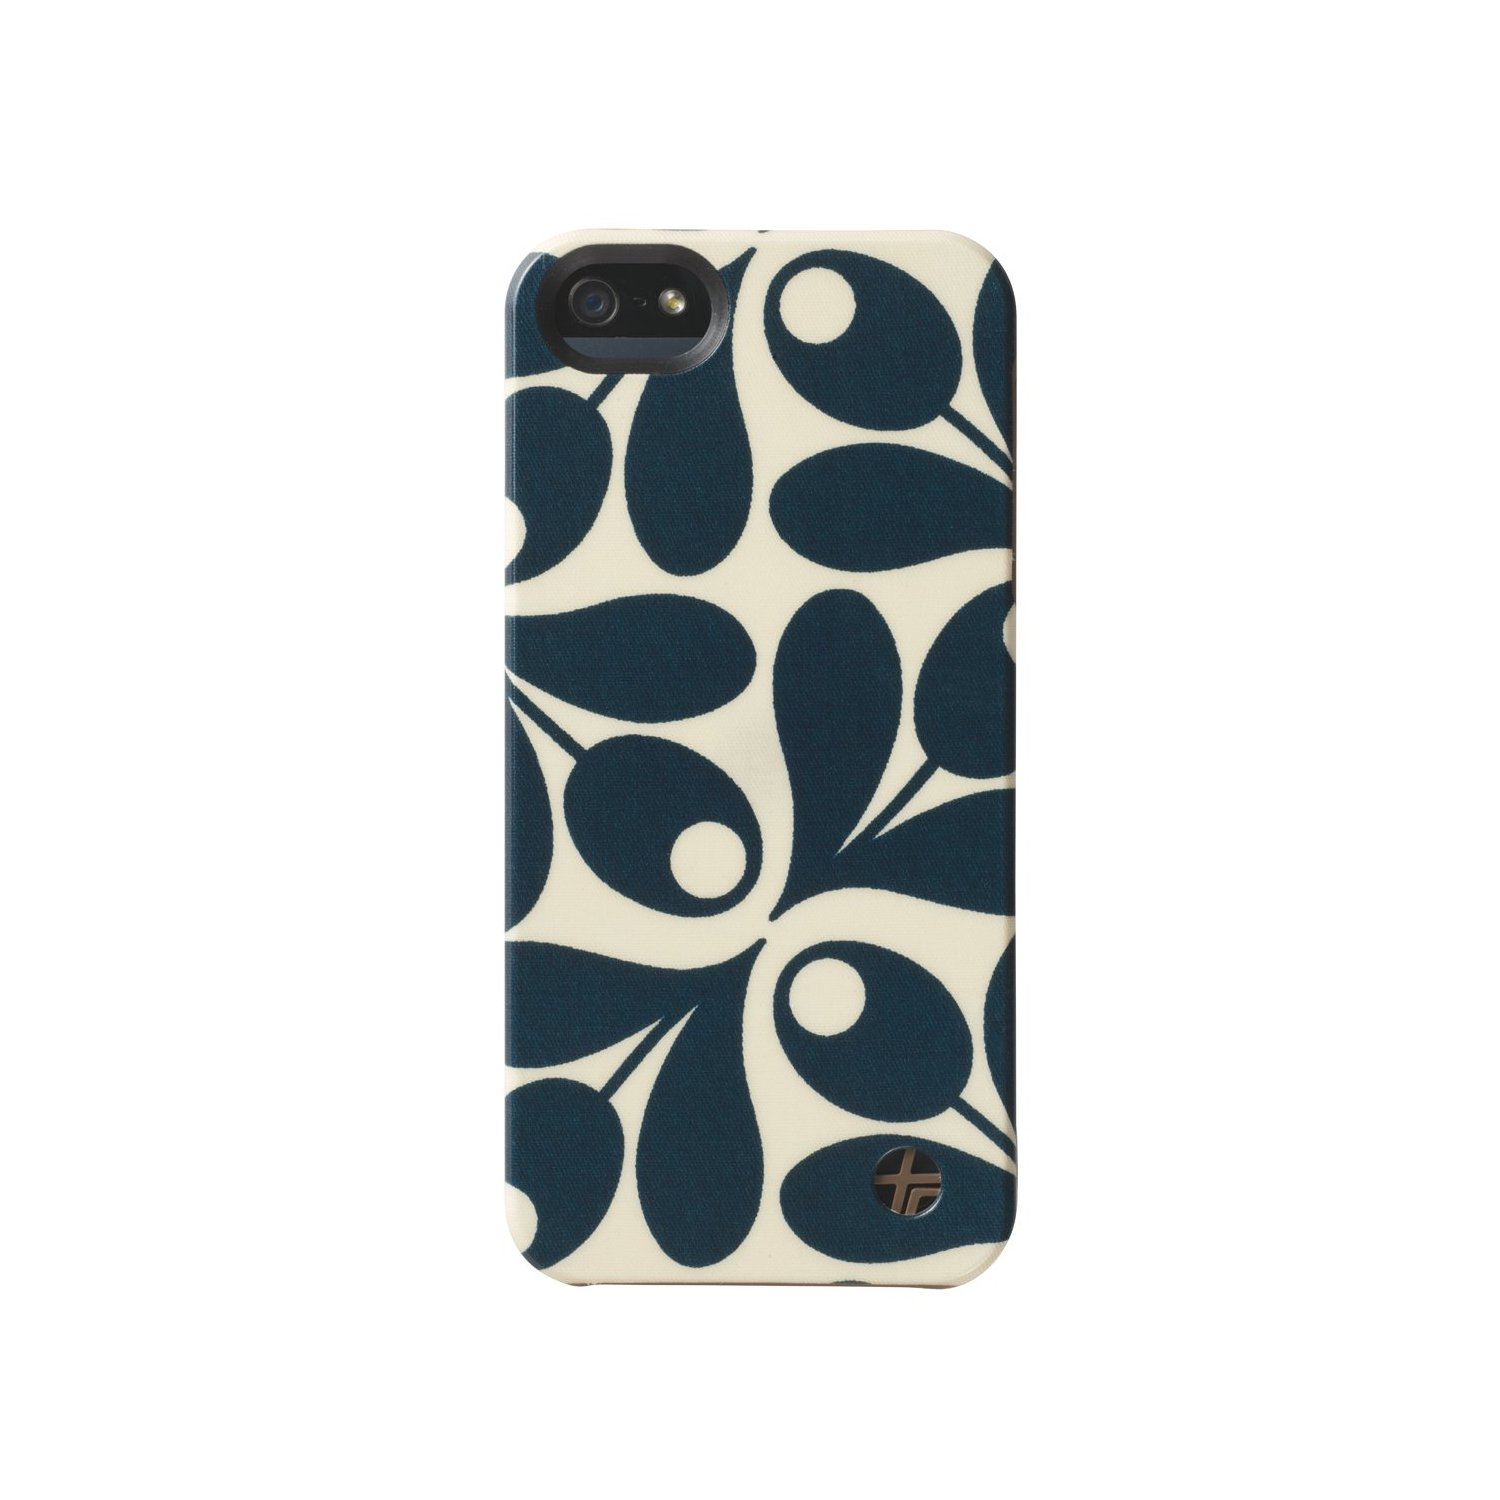 brand new 5579a 86d26 Orla Kiely Snap On Case for iPhone 5 – Acorn Cup